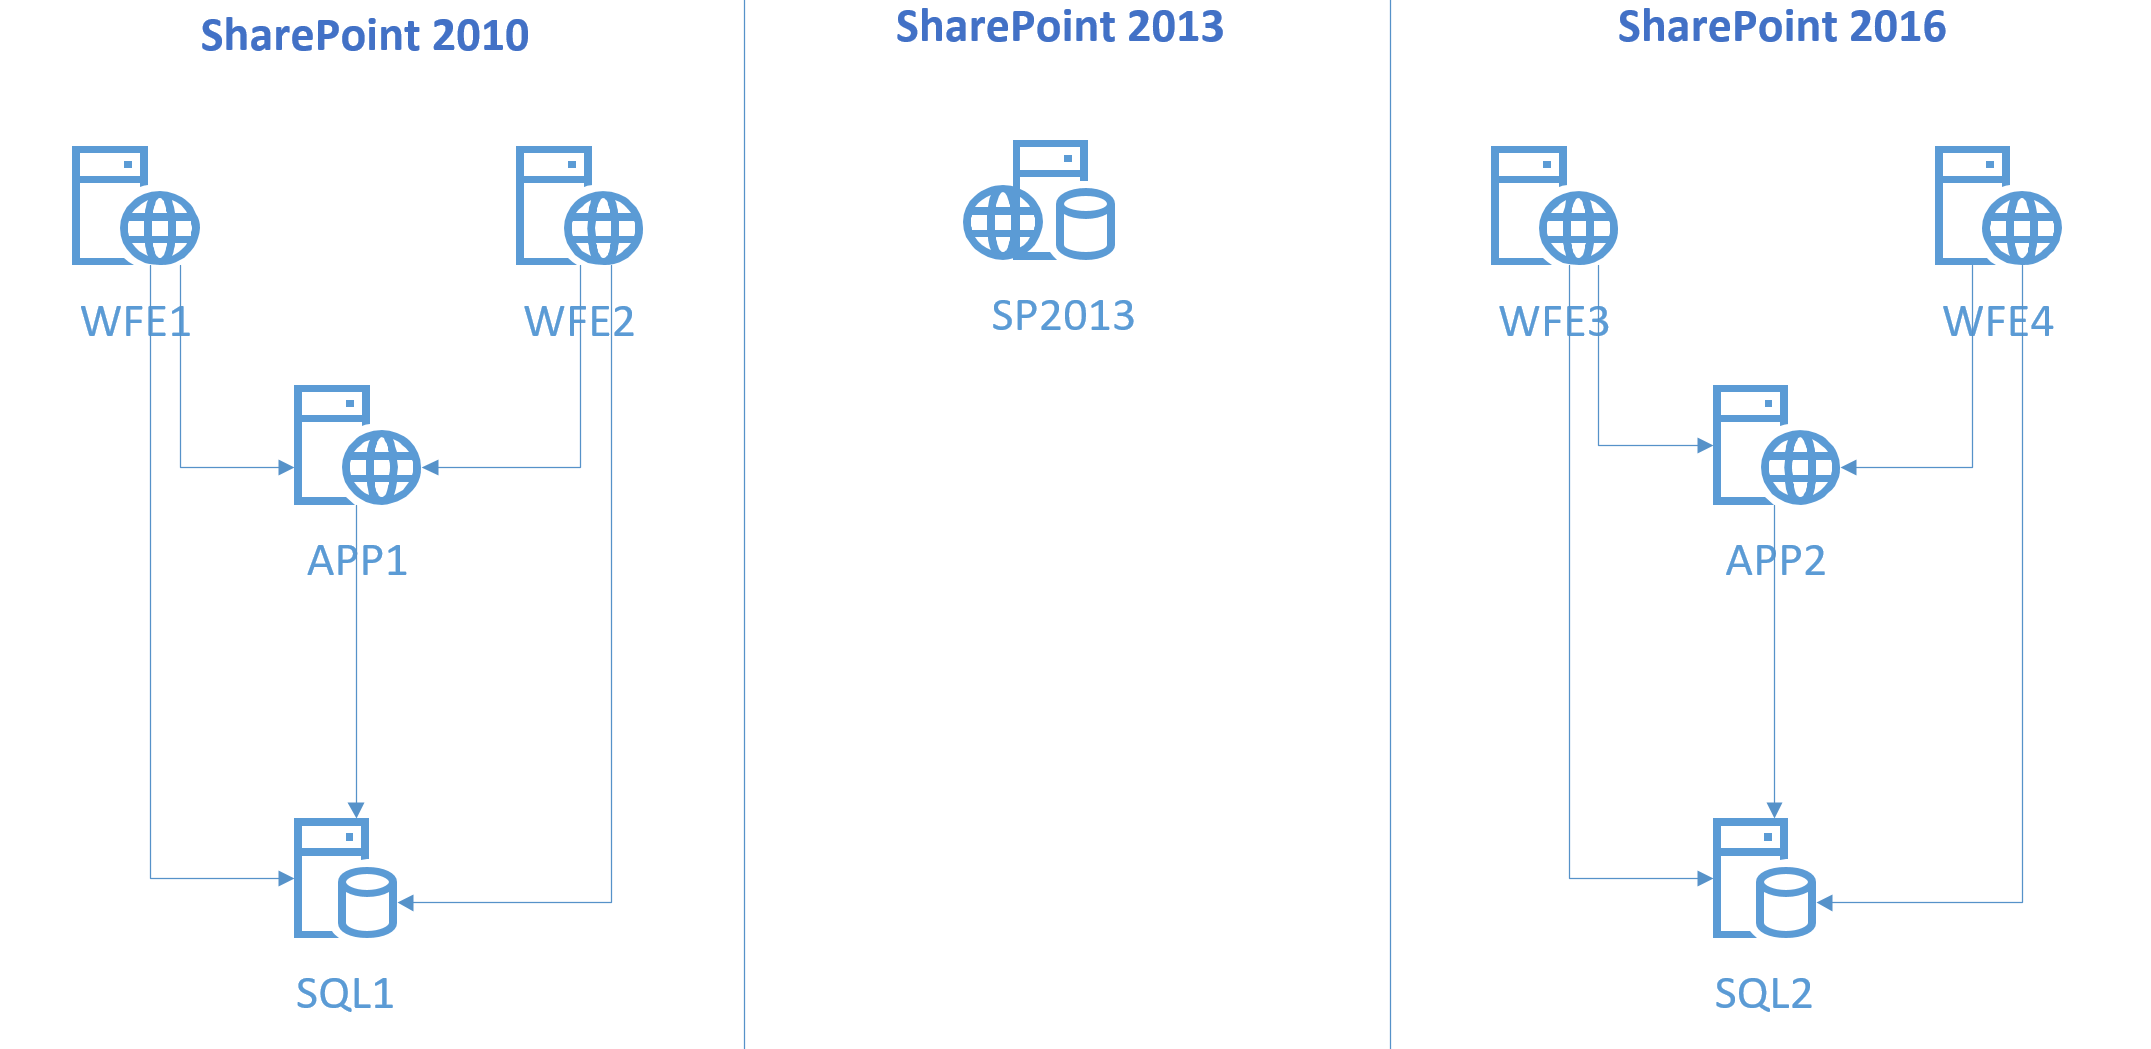 sharepoint 2010 farm architecture diagram hobbes and locke venn upgrade from to 2016  crawl